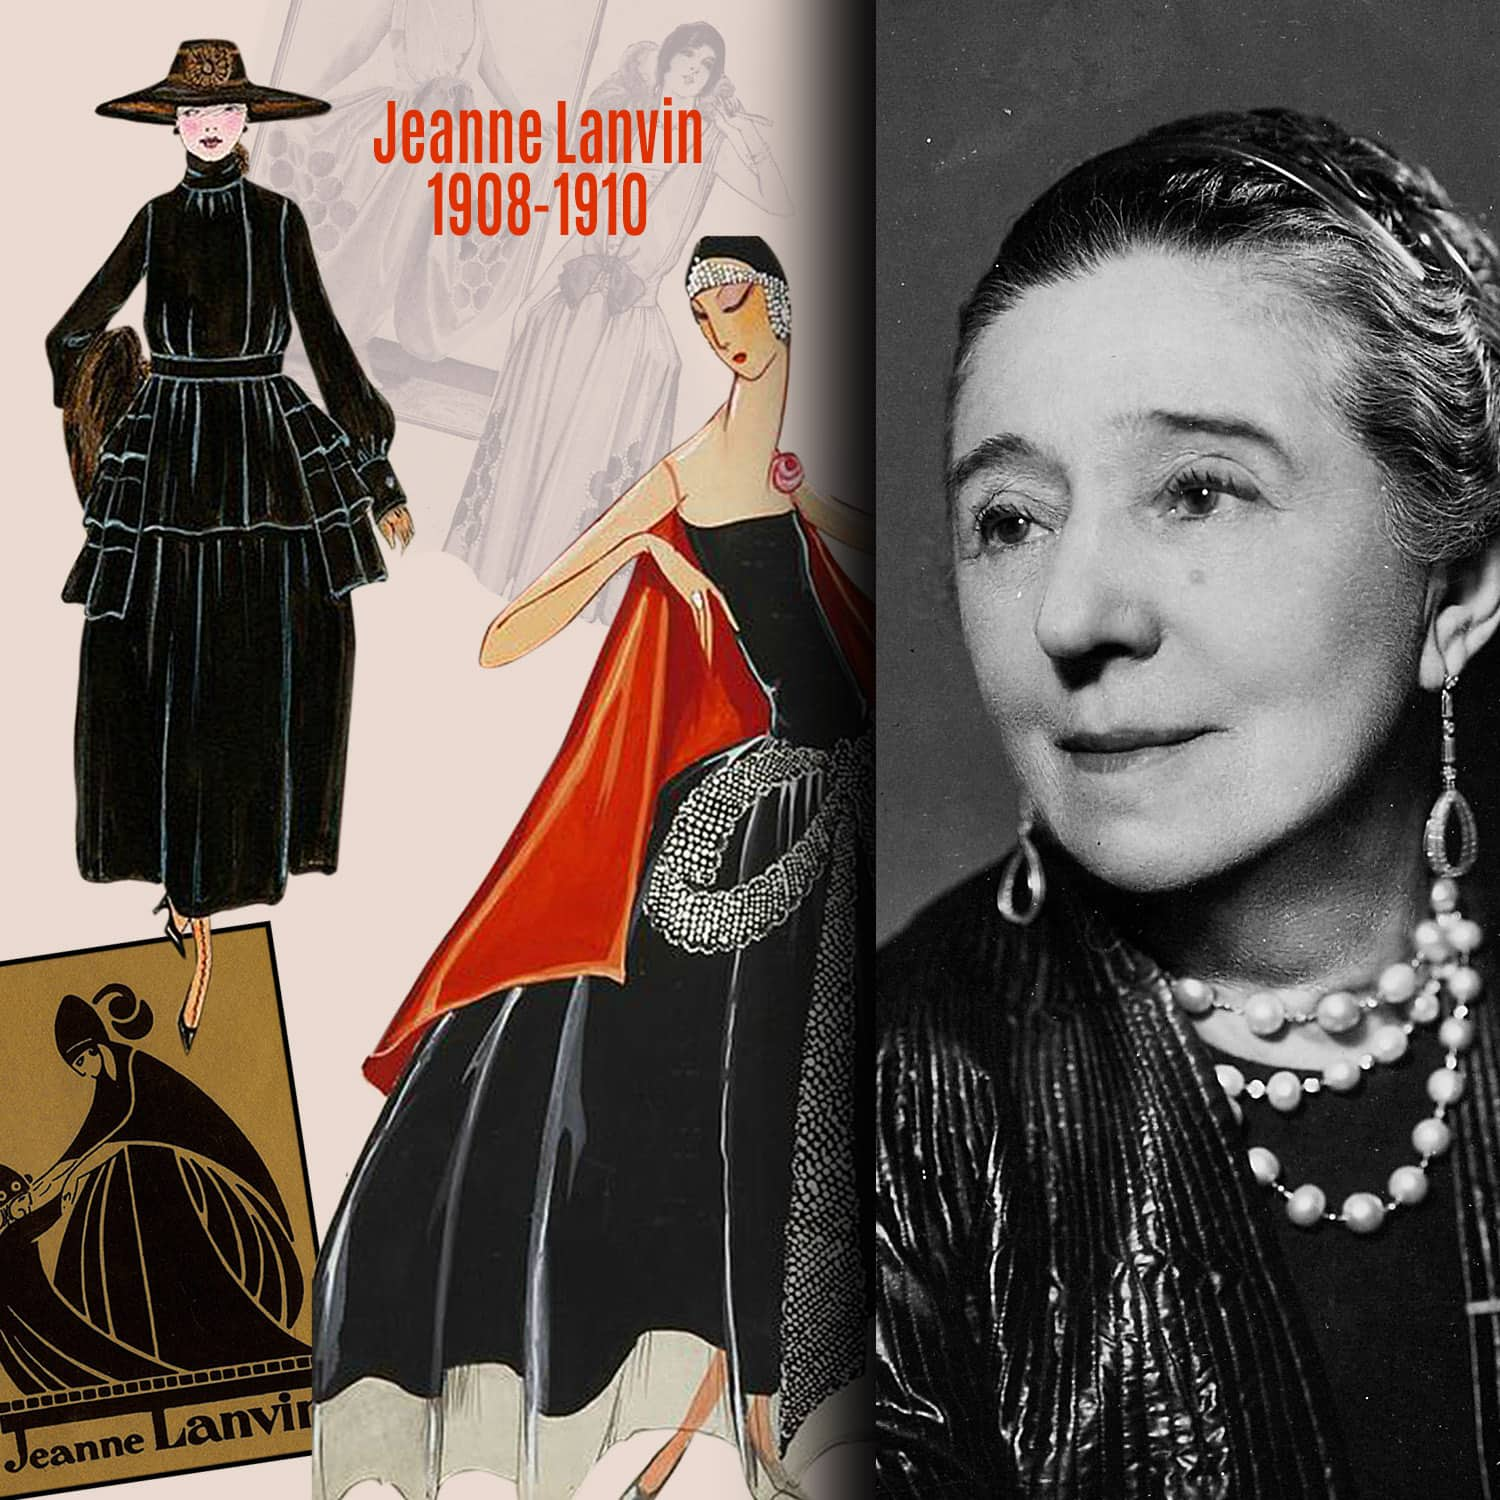 Jeanne Lanvin 1908-1910 inventions